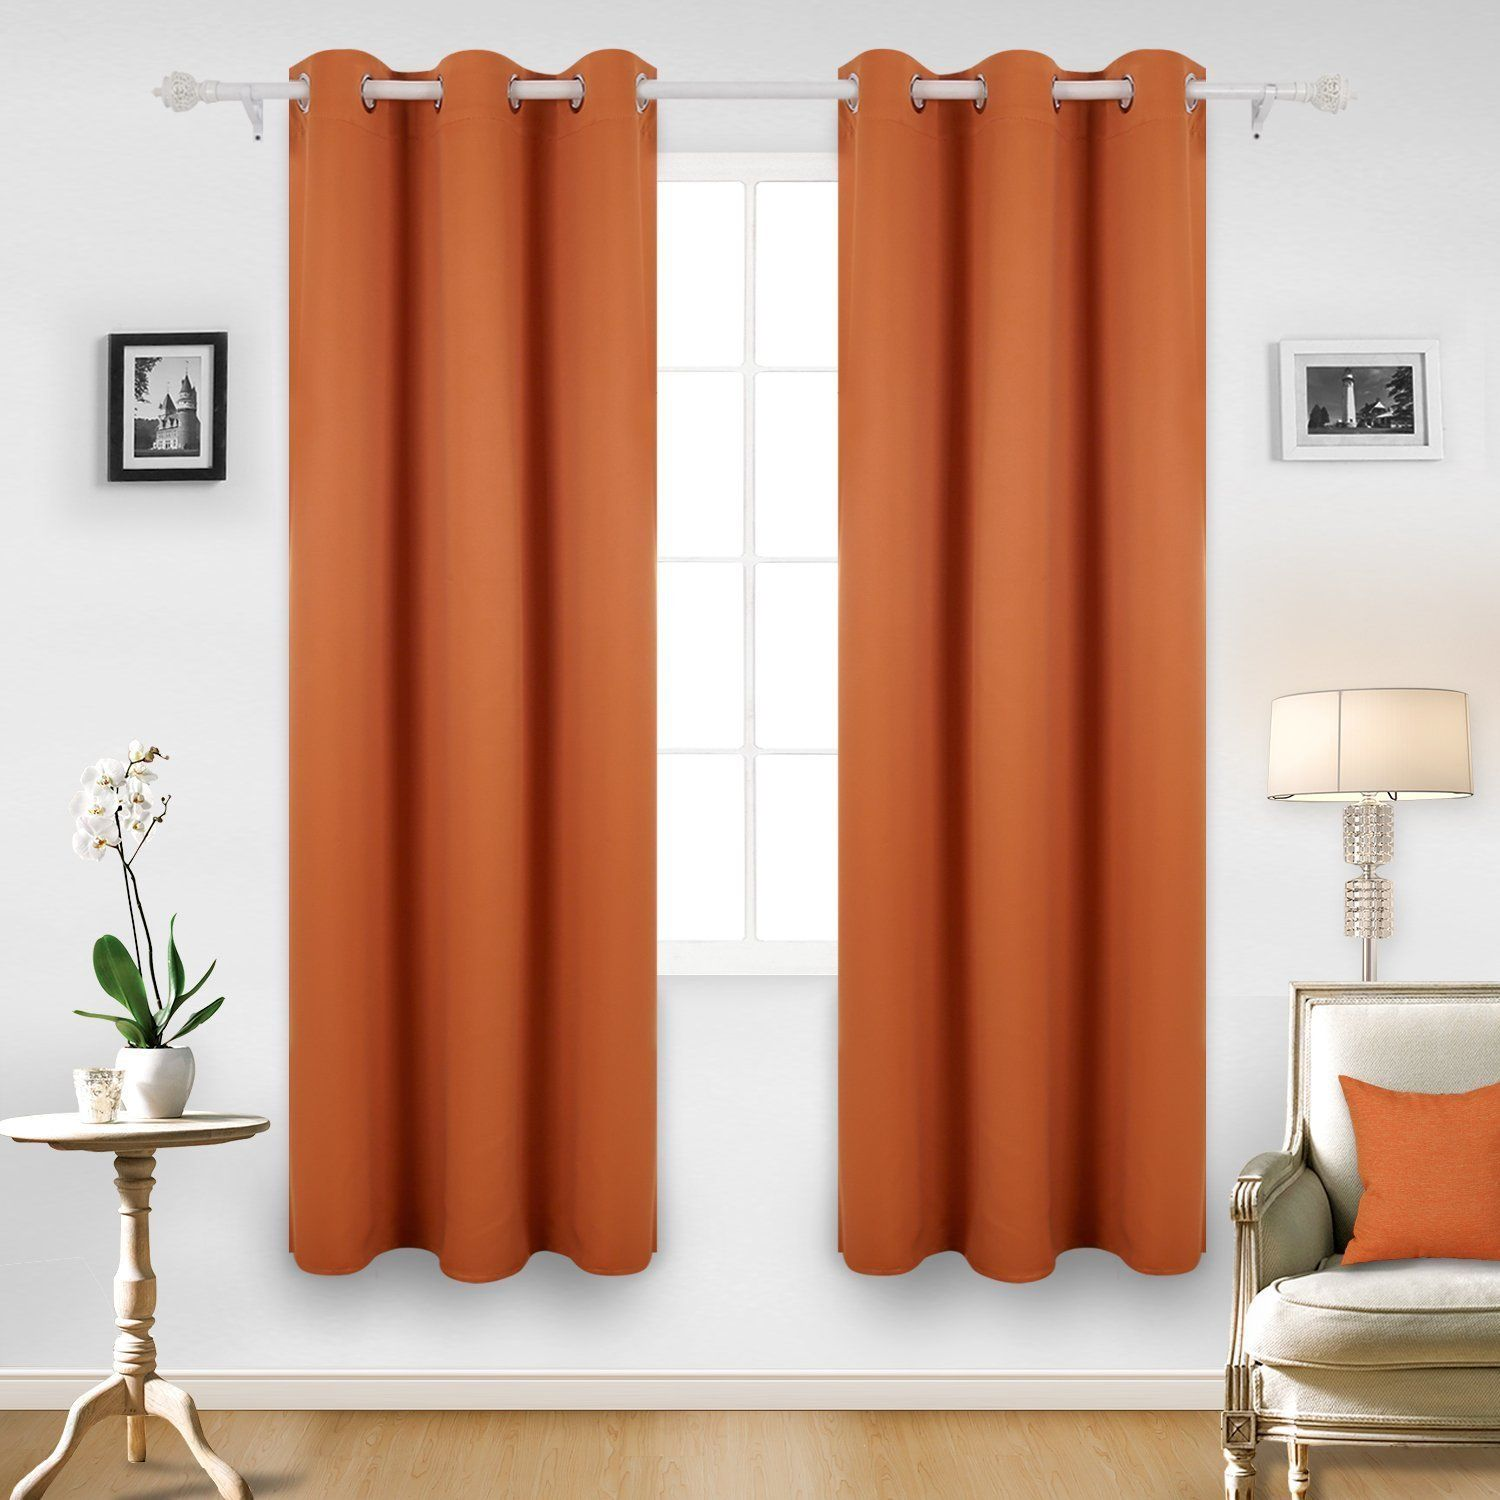 105 Inch Curtains 7 Of The Best Blackout Curtains On Amazon According To Reviewers